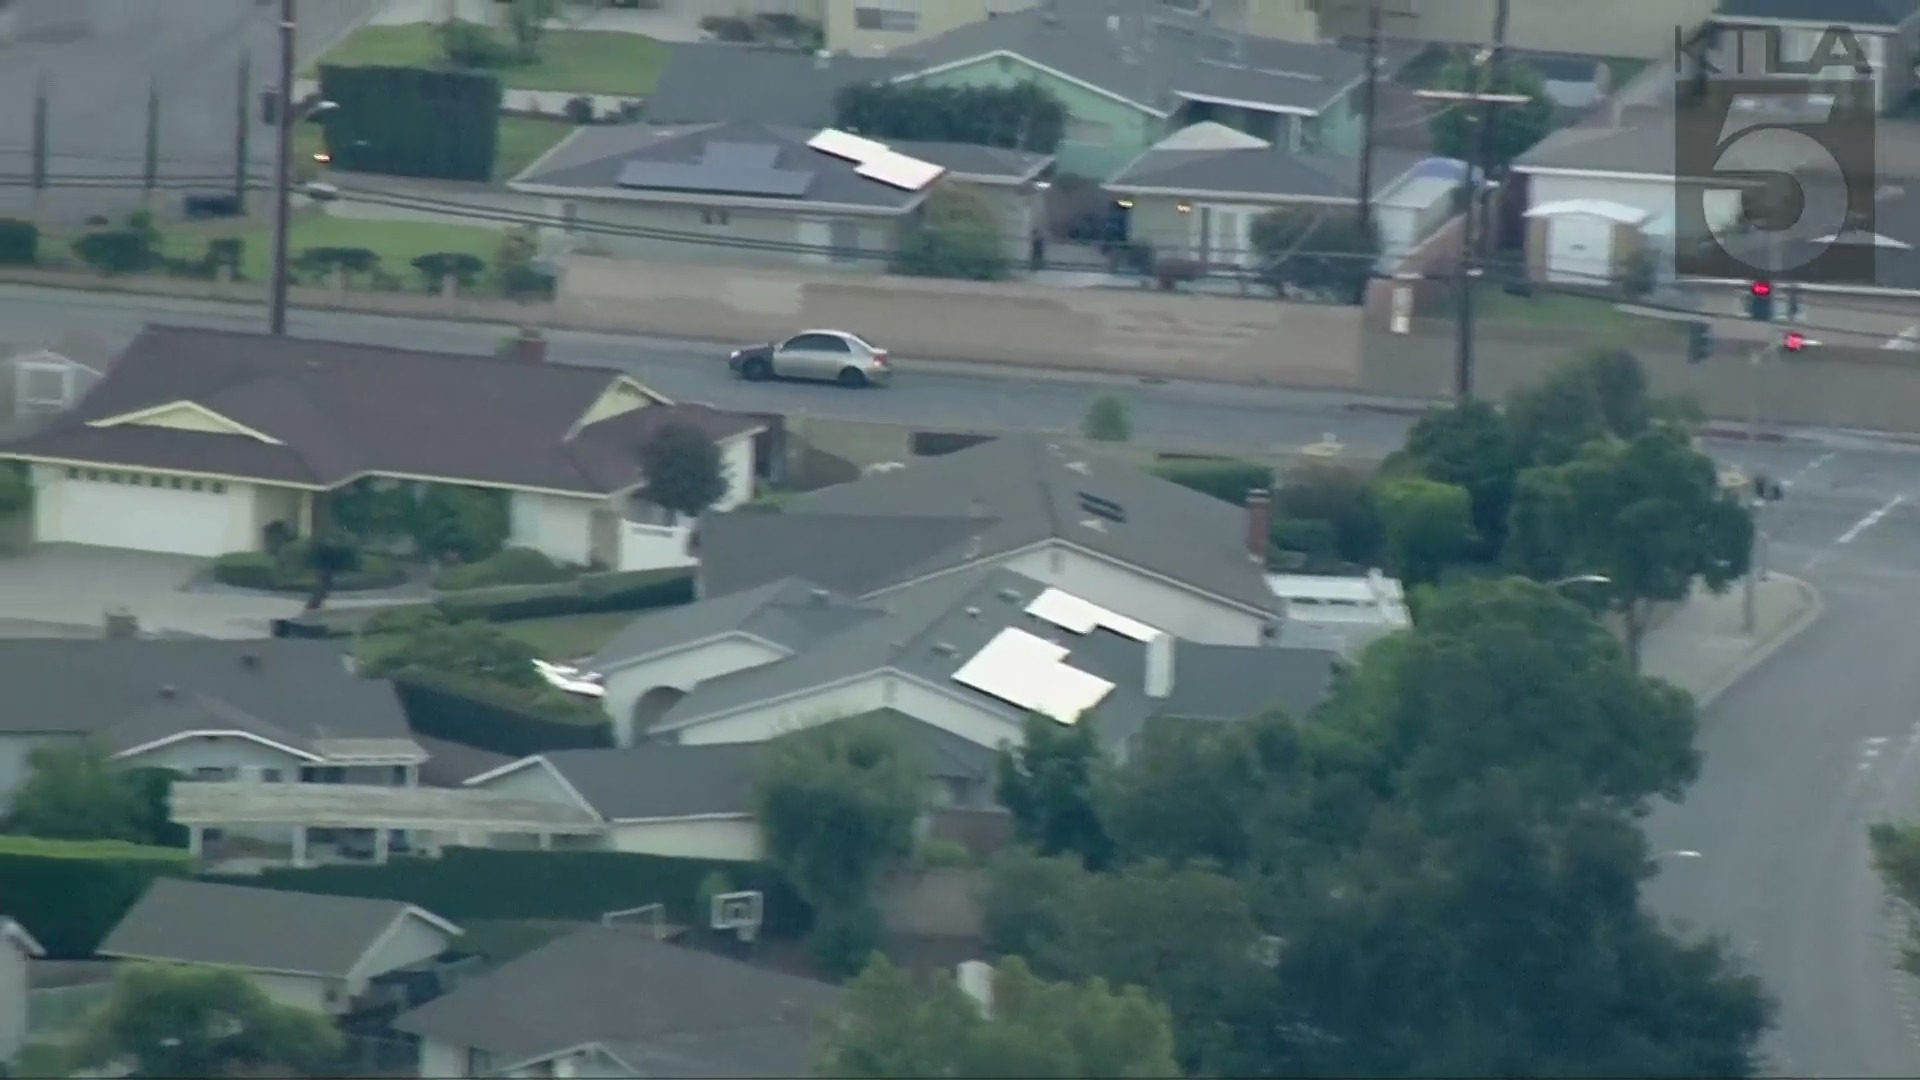 Authorities were in pursuit of a vehicle in the Glendora area on Aug. 3, 2021. (KTLA)